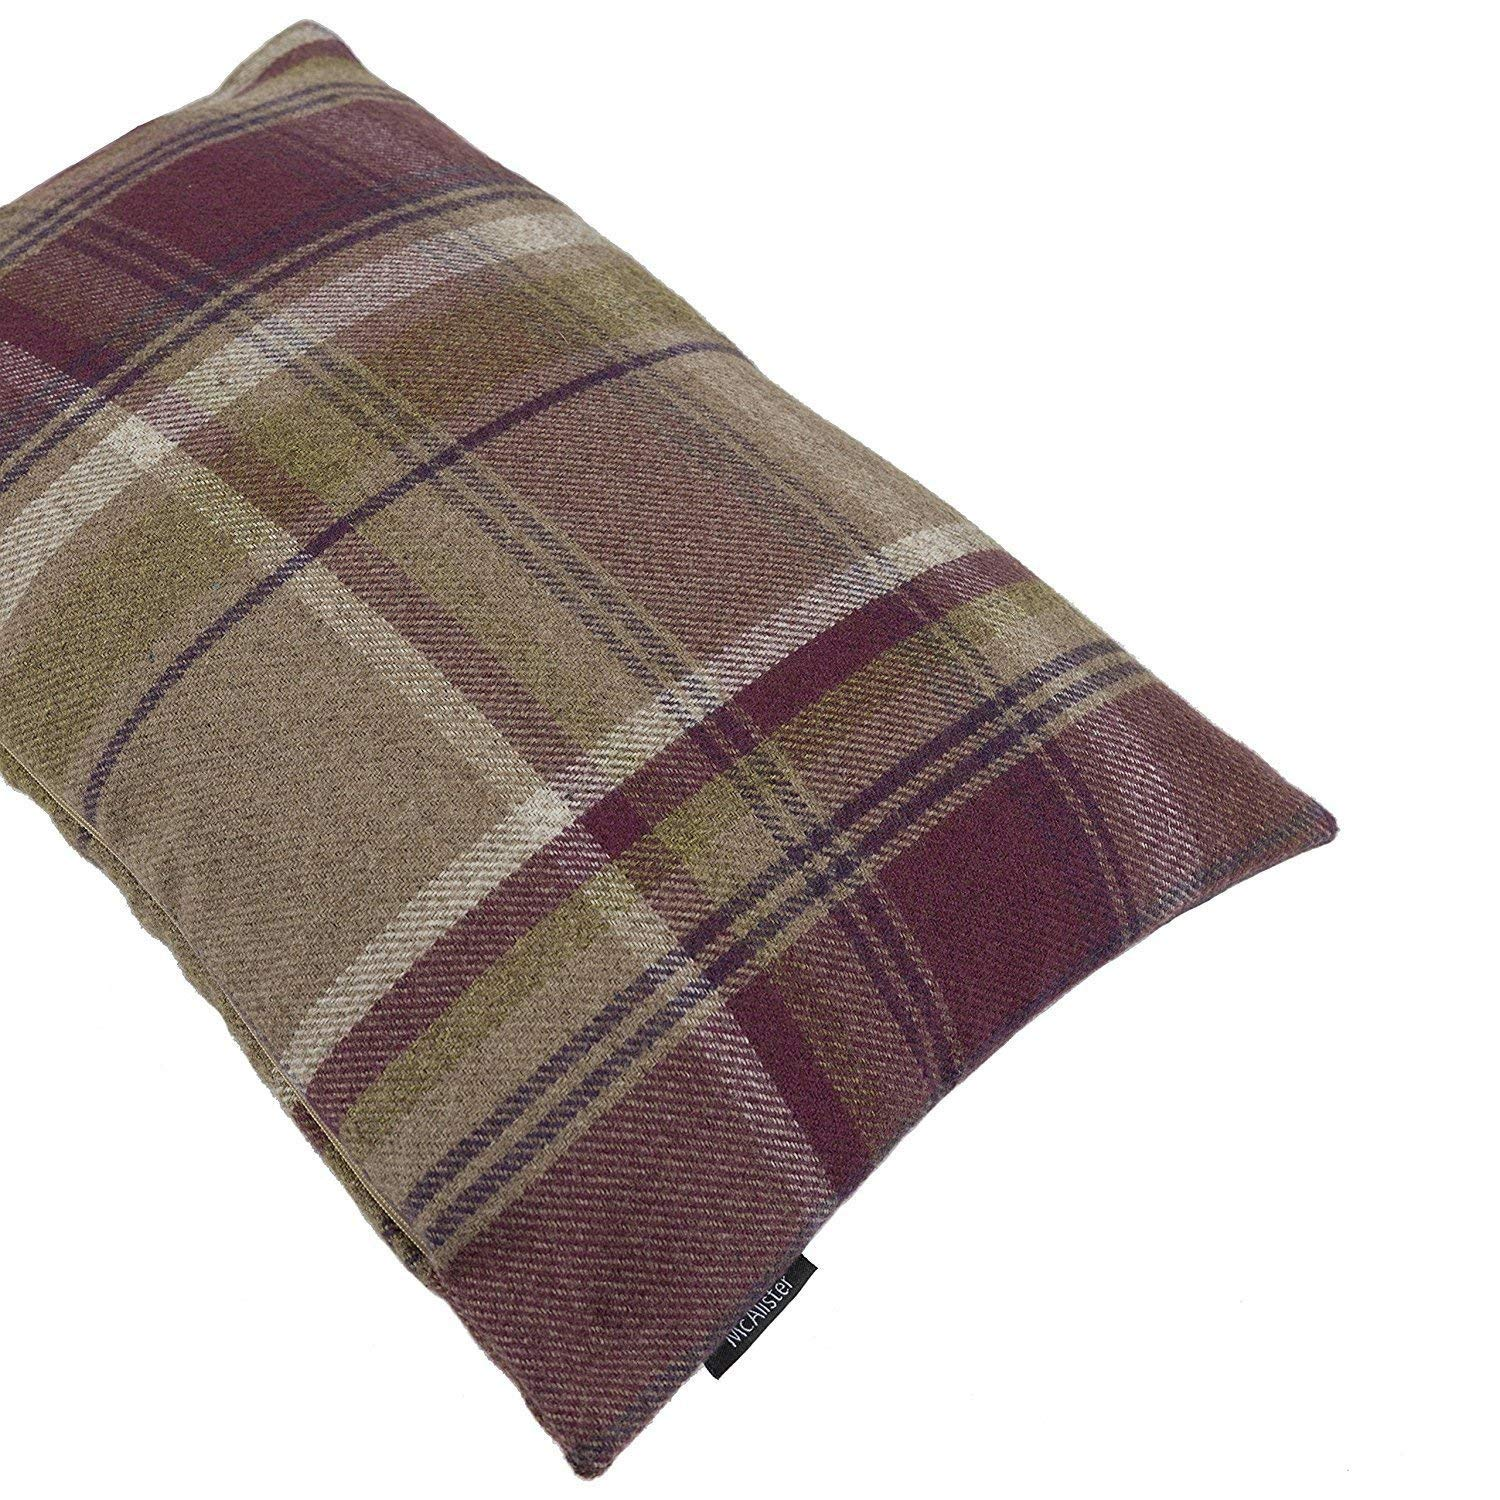 McAlister Textiles Heritage Filled Pillow Mulberry Purple Tartan Plaid Decorative Wool Feel Throw Scatter Sofa Cushion Size – 24 x 16 Inches